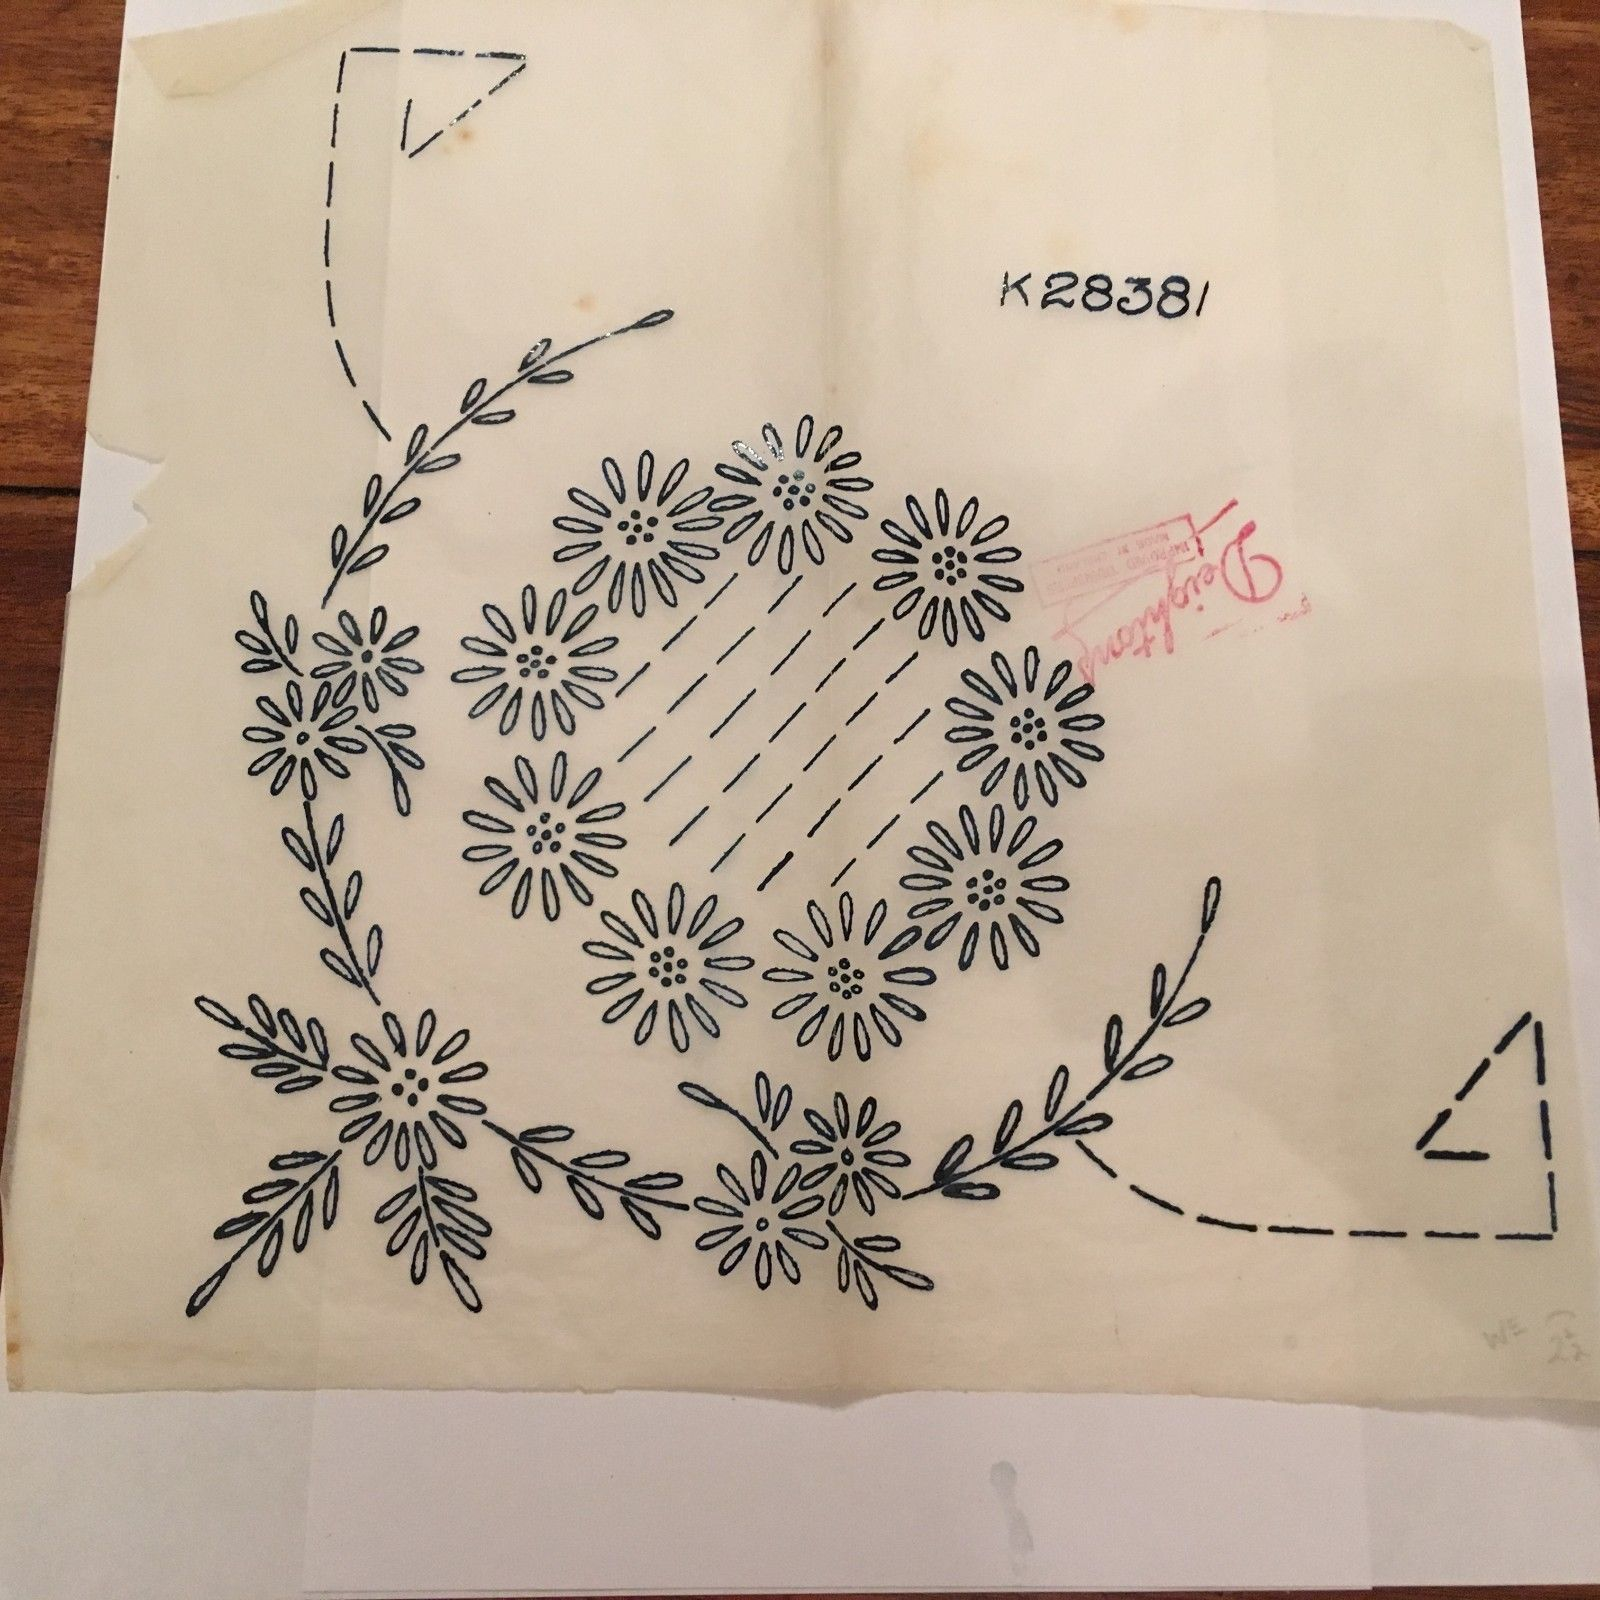 Vintage Style Iron on Transfers Moda Home Embroidery Cross Stitch Kitch/'n Stitch